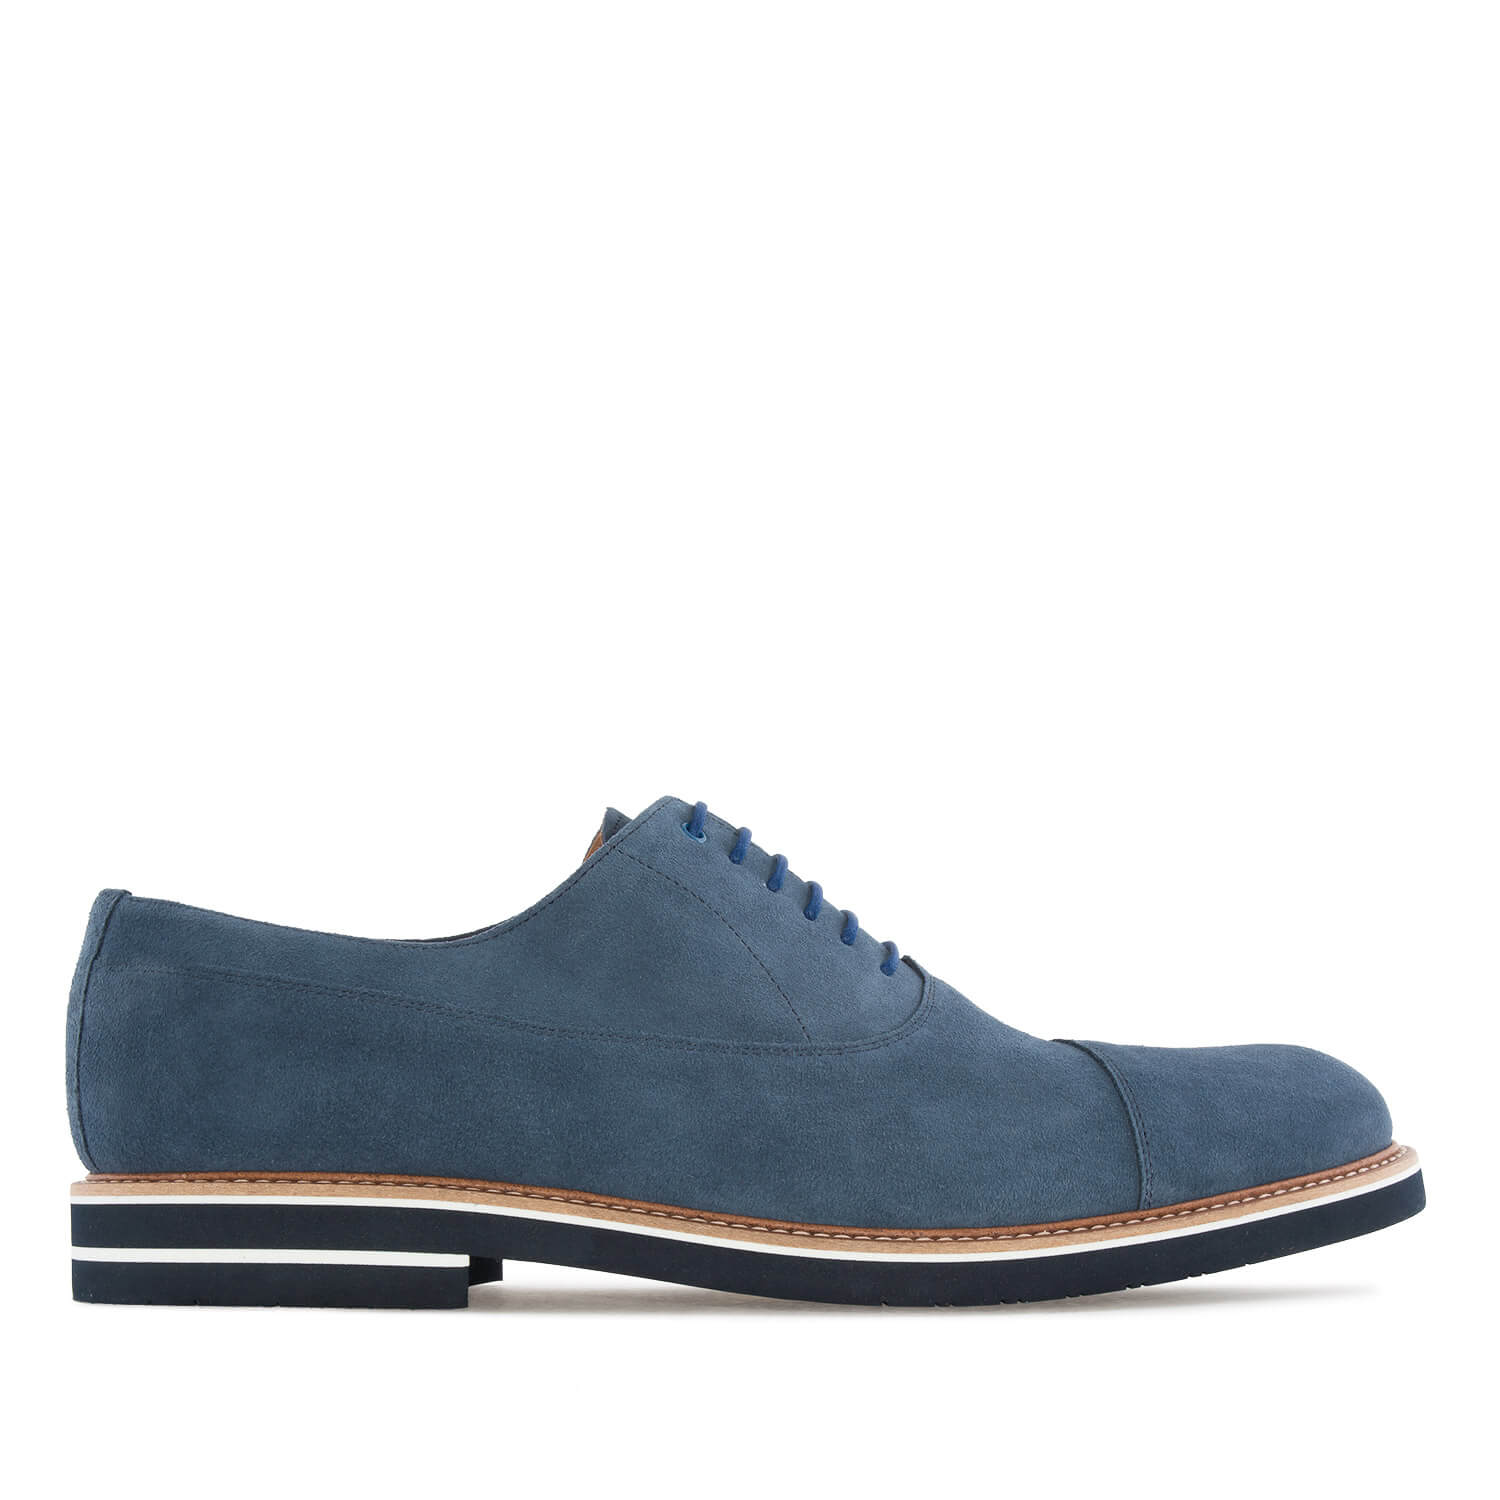 Zapatos Oxford Serraje Jeans